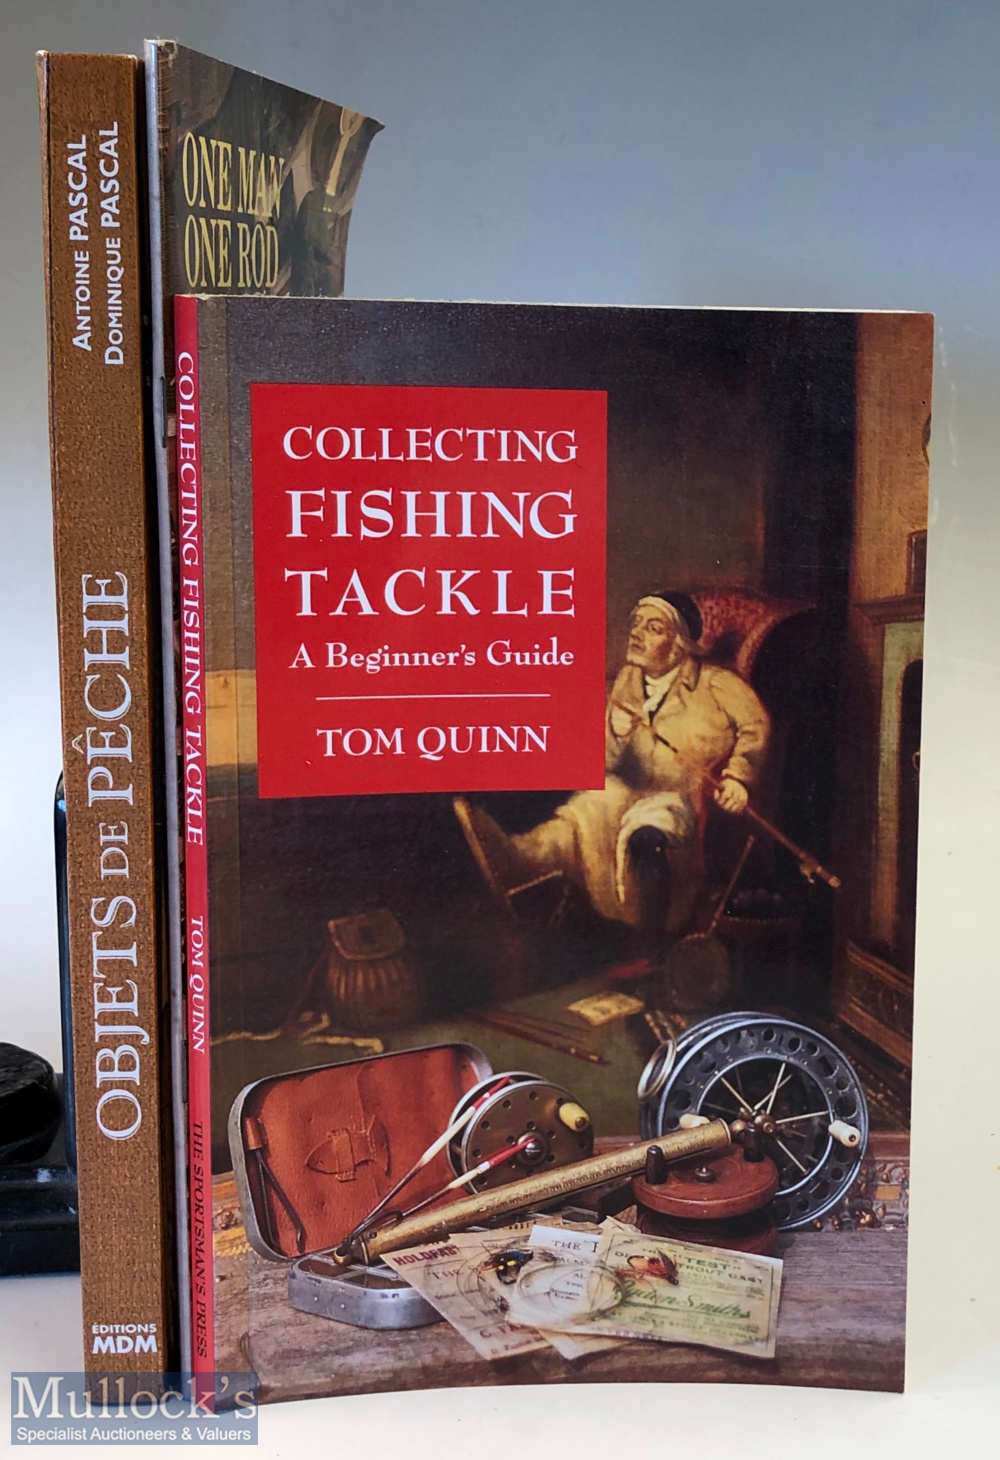 Fishing reference/collecting books featuring Steve Woit (Signed) The World of Fly Fishers and - Image 2 of 2